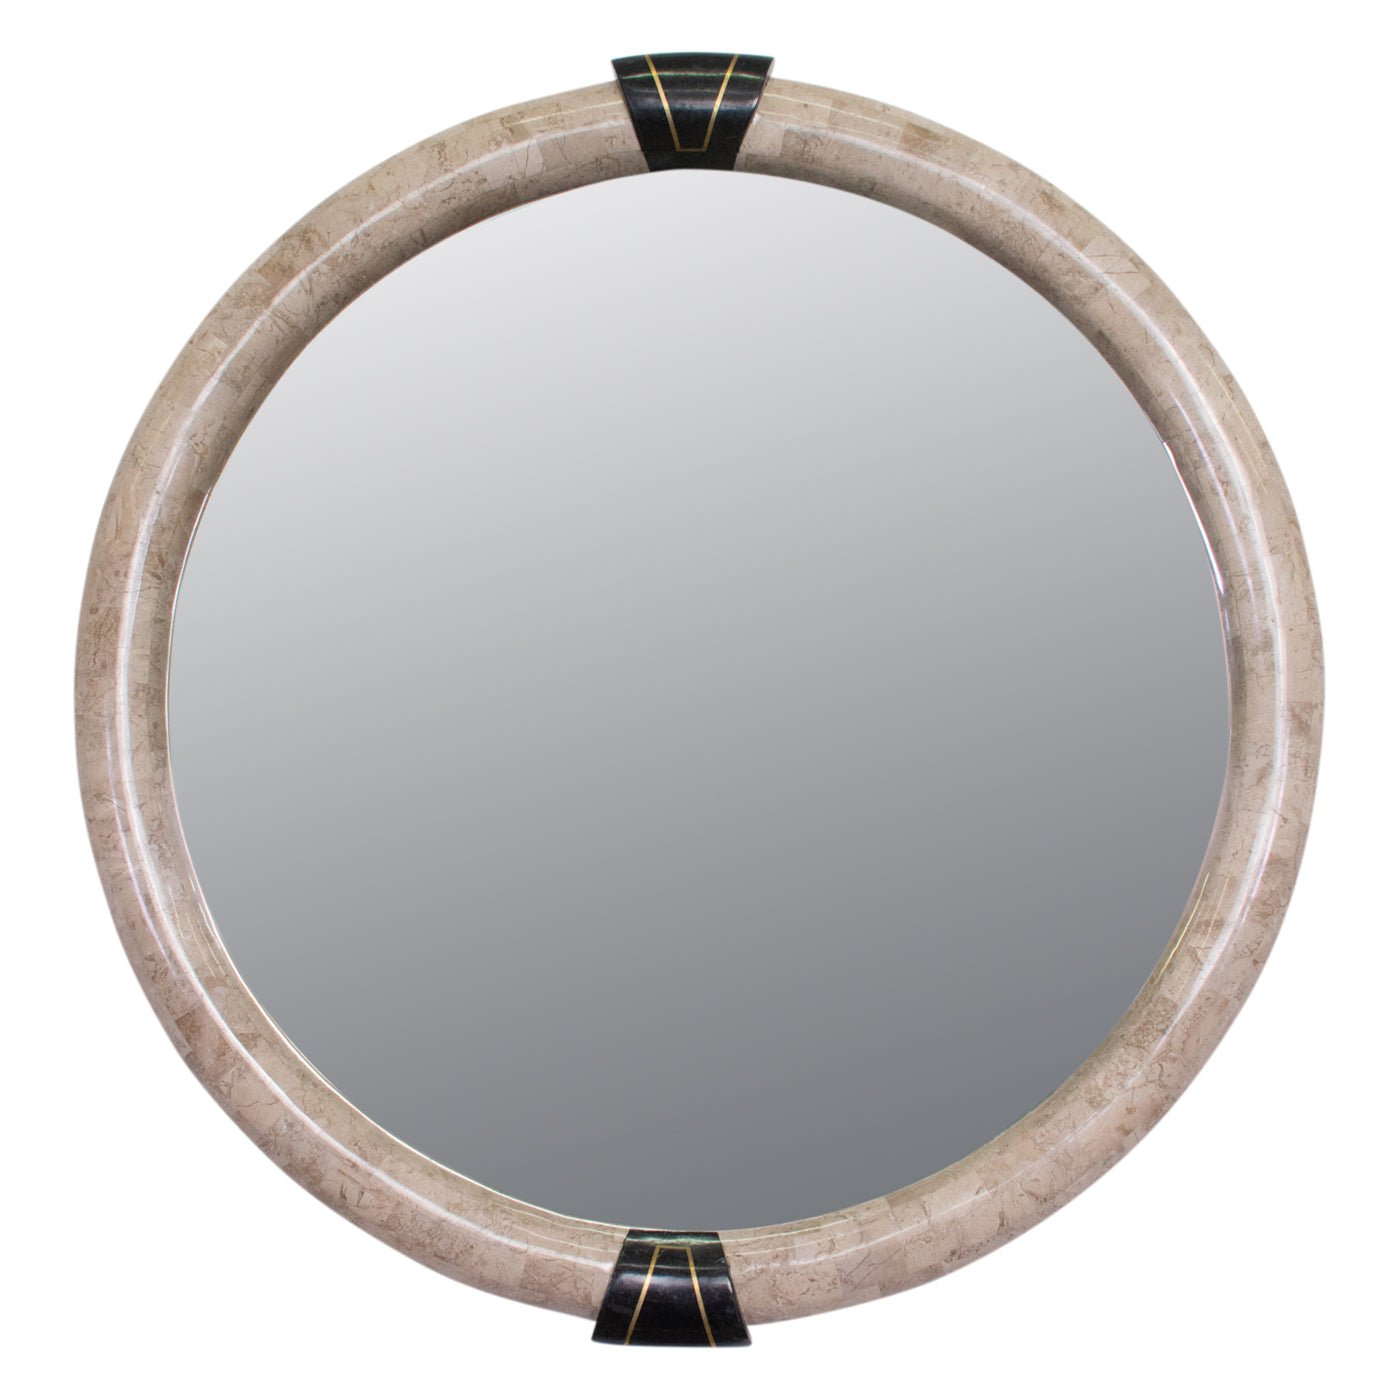 Art Deco Style Tessalated Stone Mirror